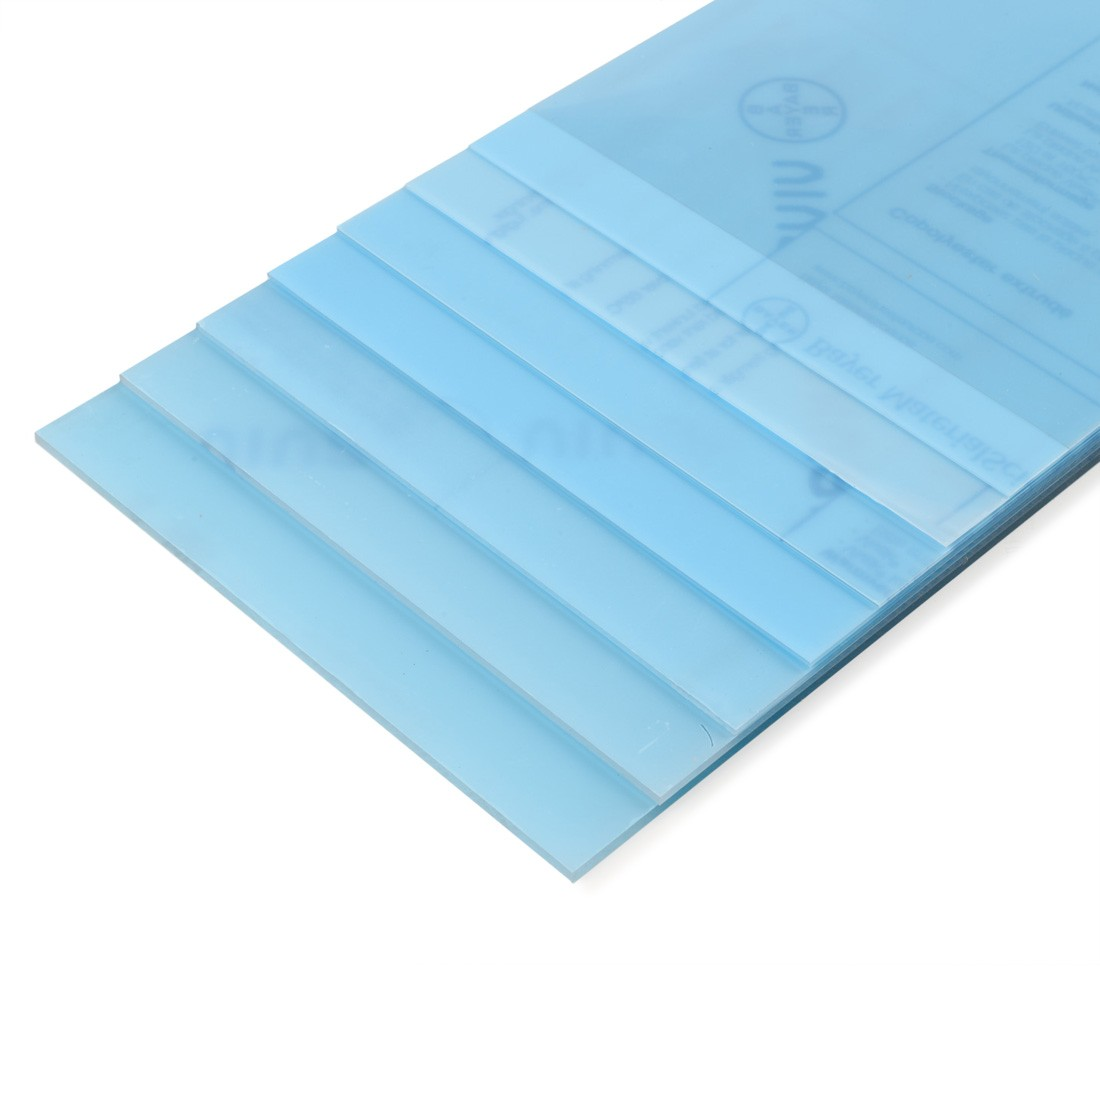 Polyester sheets mm.194x320 - mm.0,2